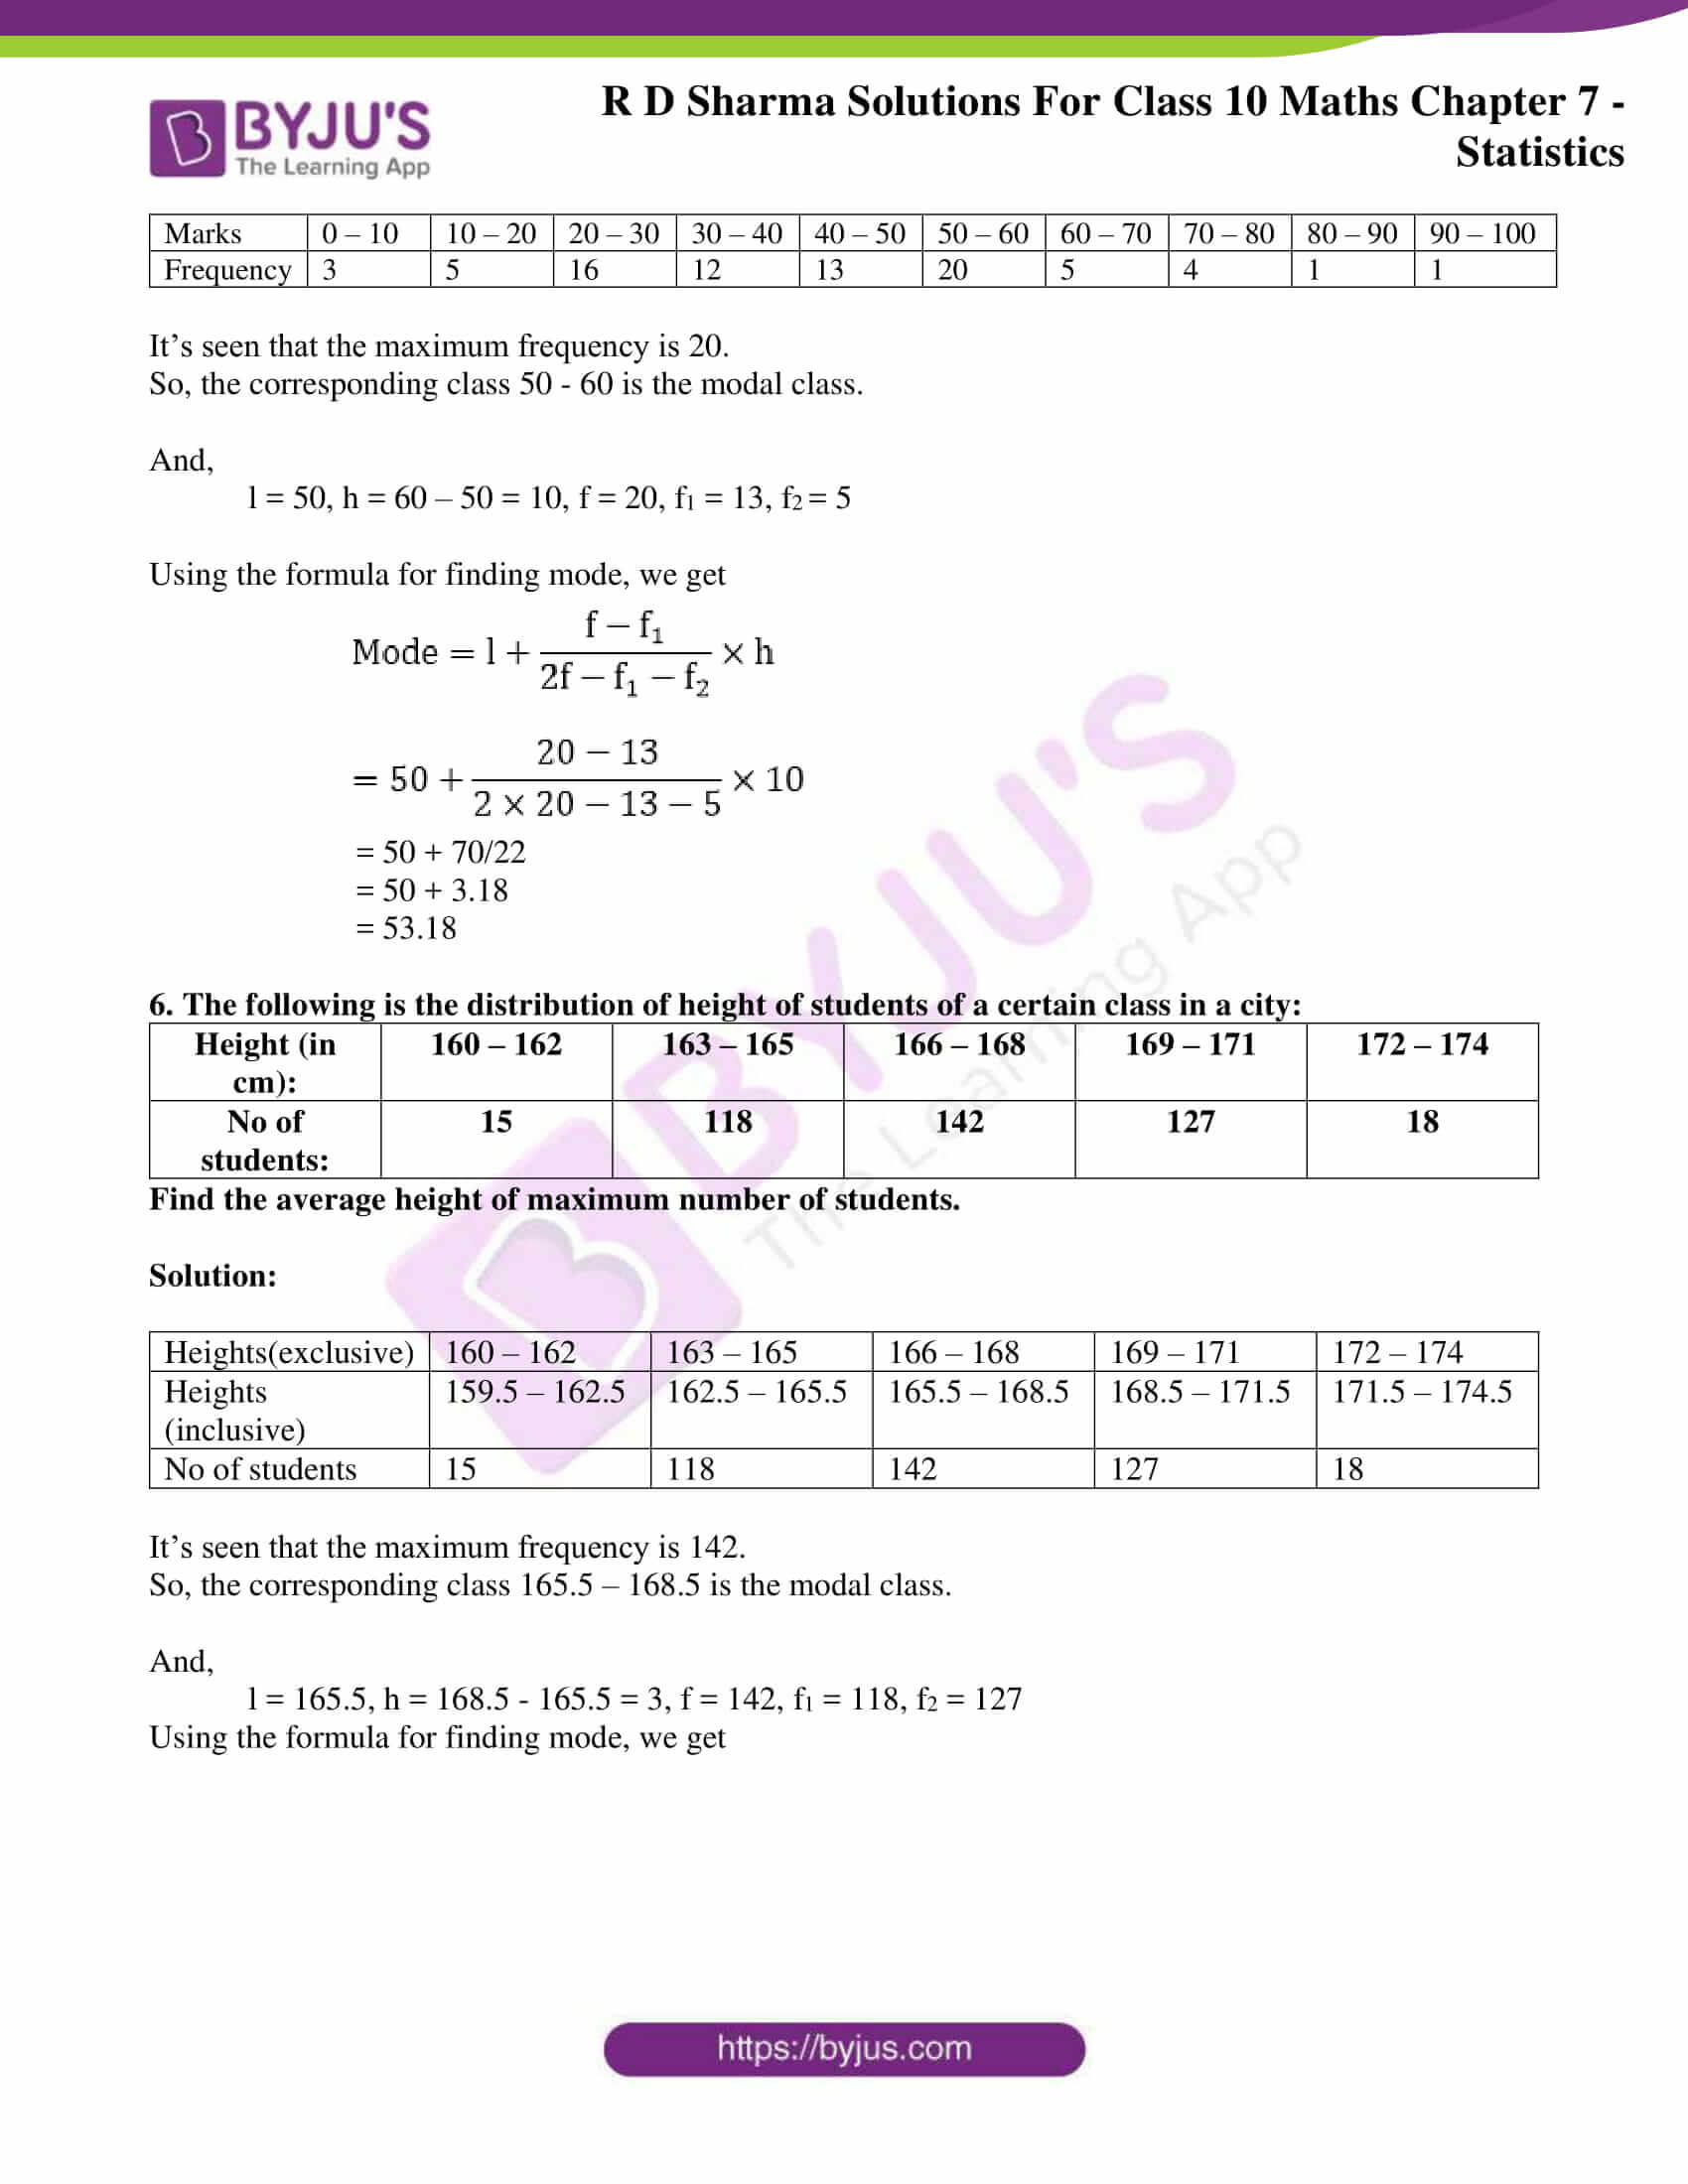 RD Sharma Solutions for Class 10 Chapter 7 Statistics 30